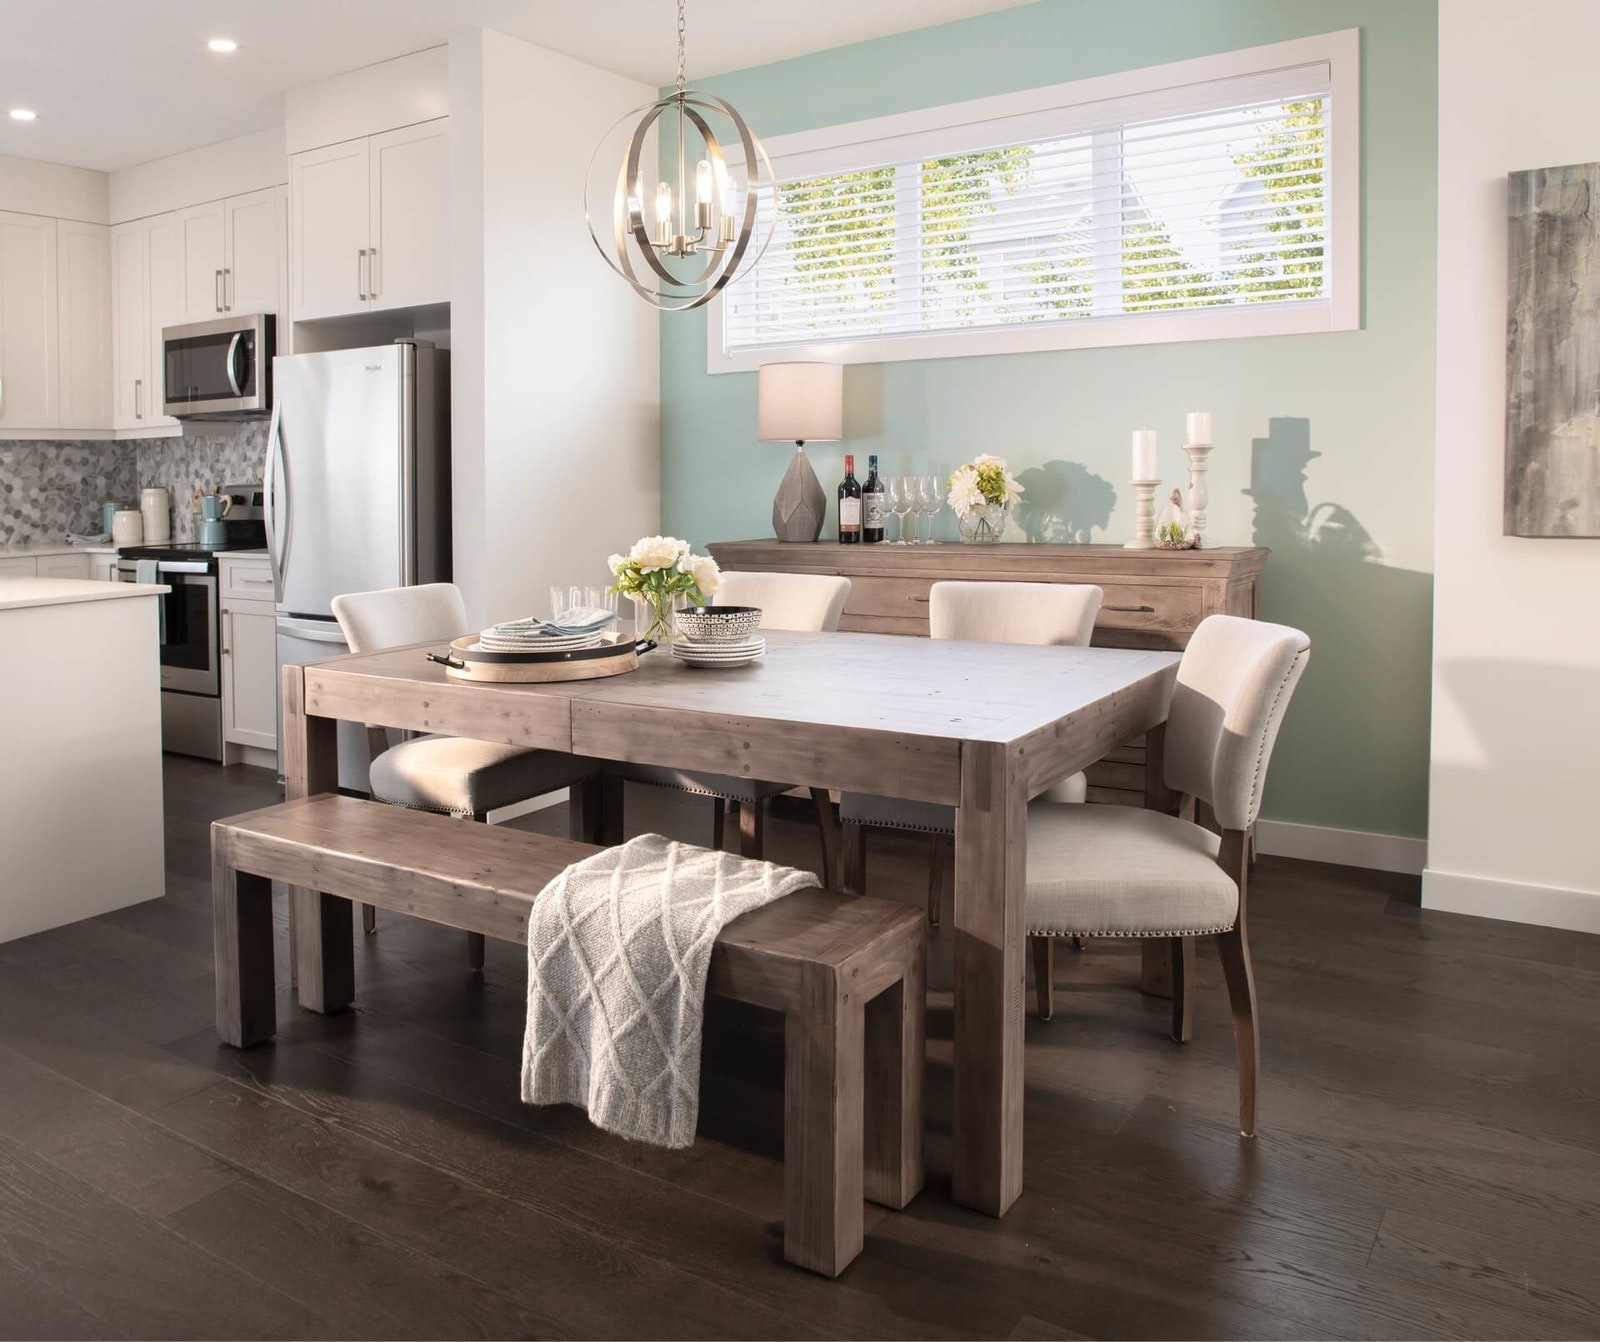 Wood table in dining room